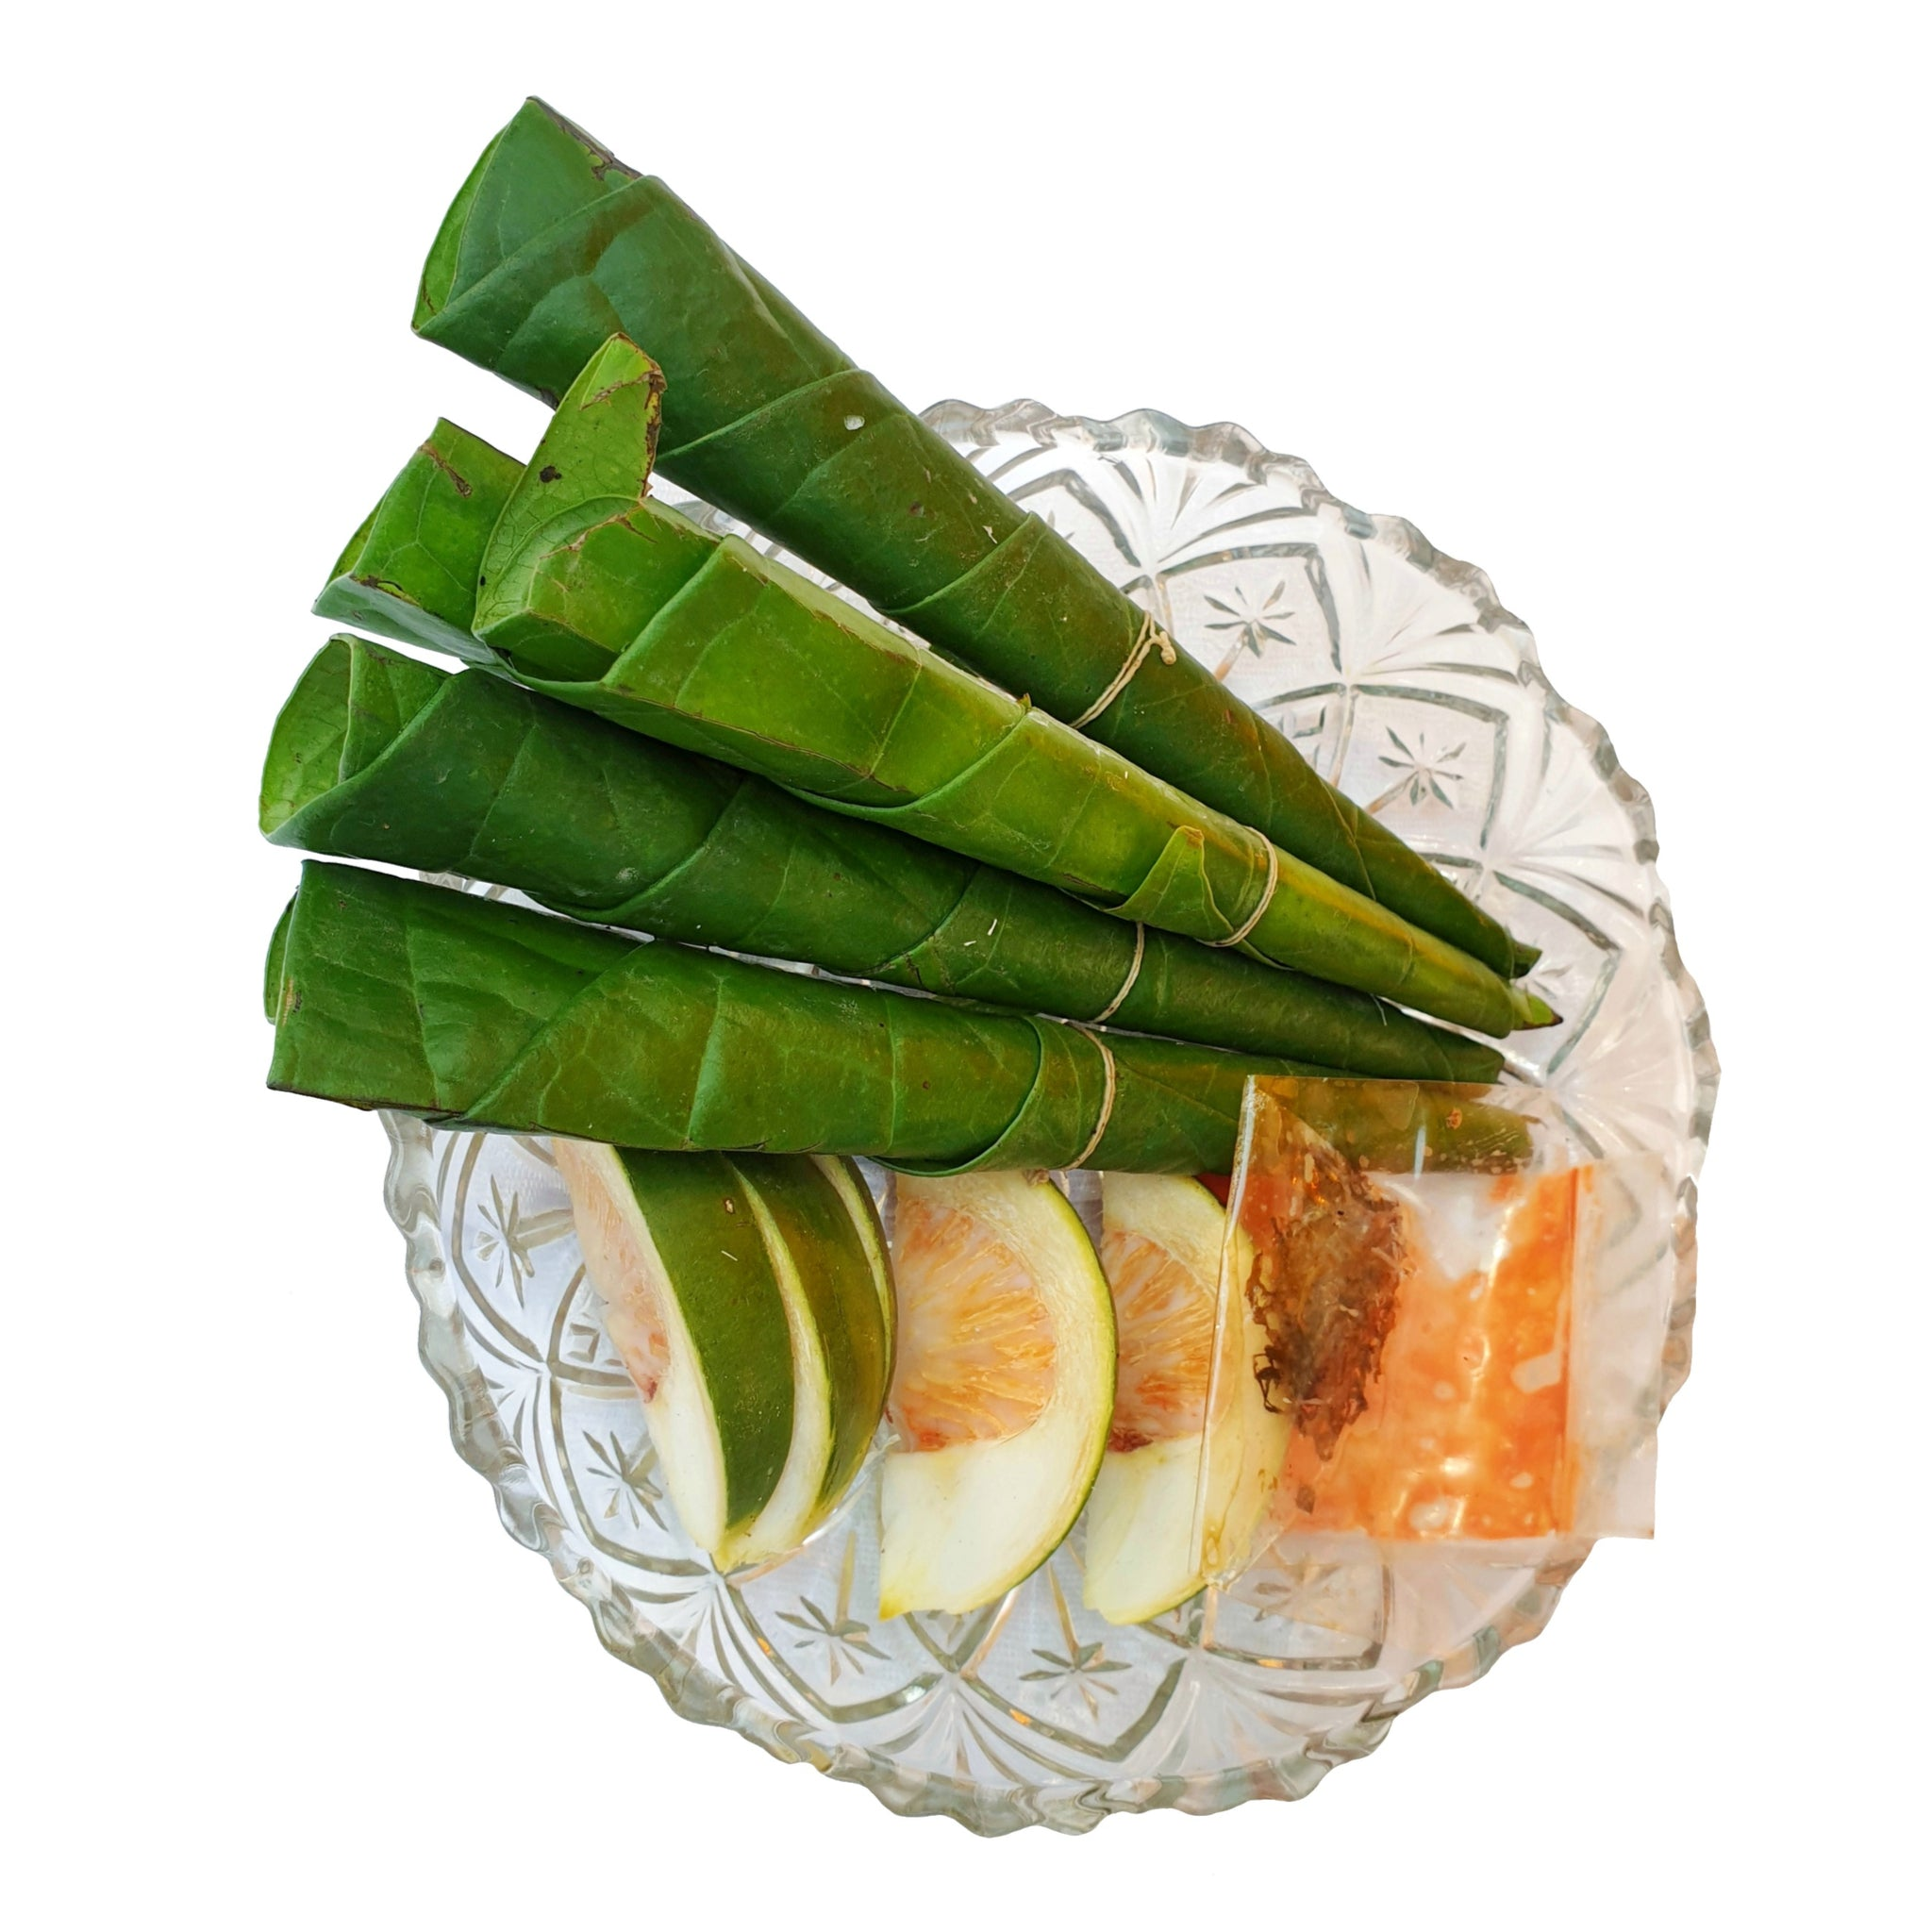 Fresh Thai betel set imported weekly from Thailand